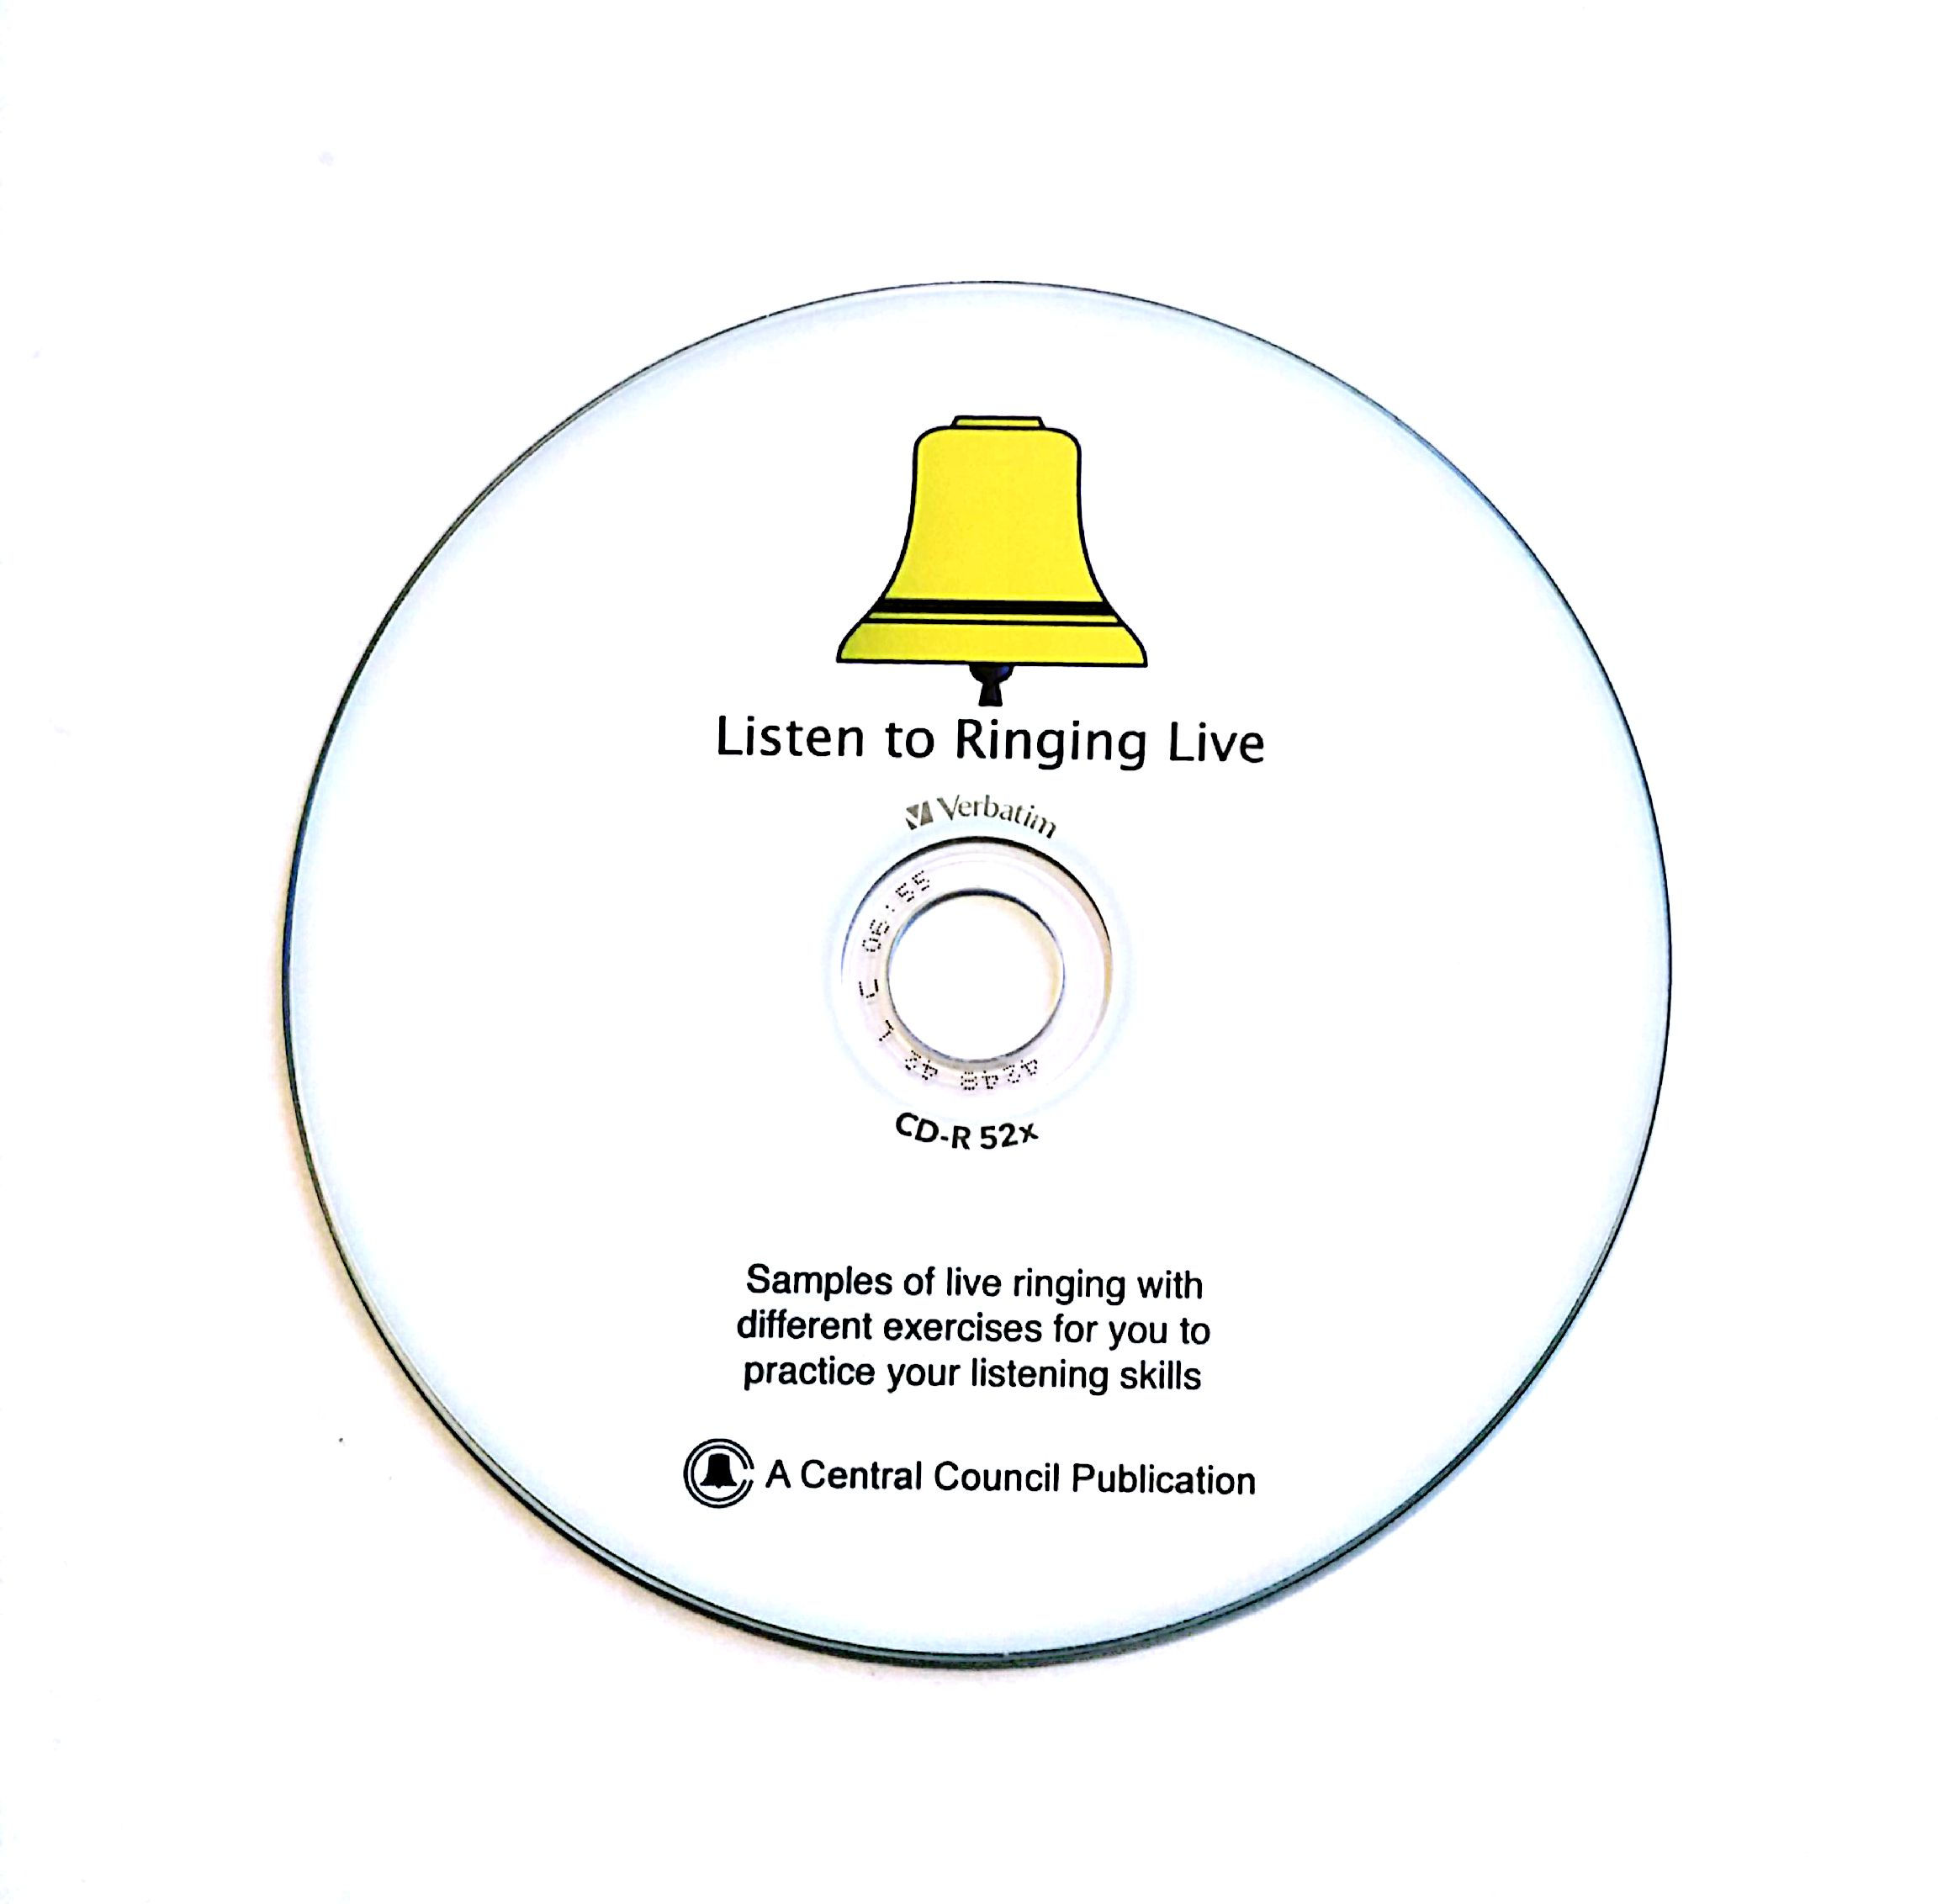 Listen to Ringing Live CD